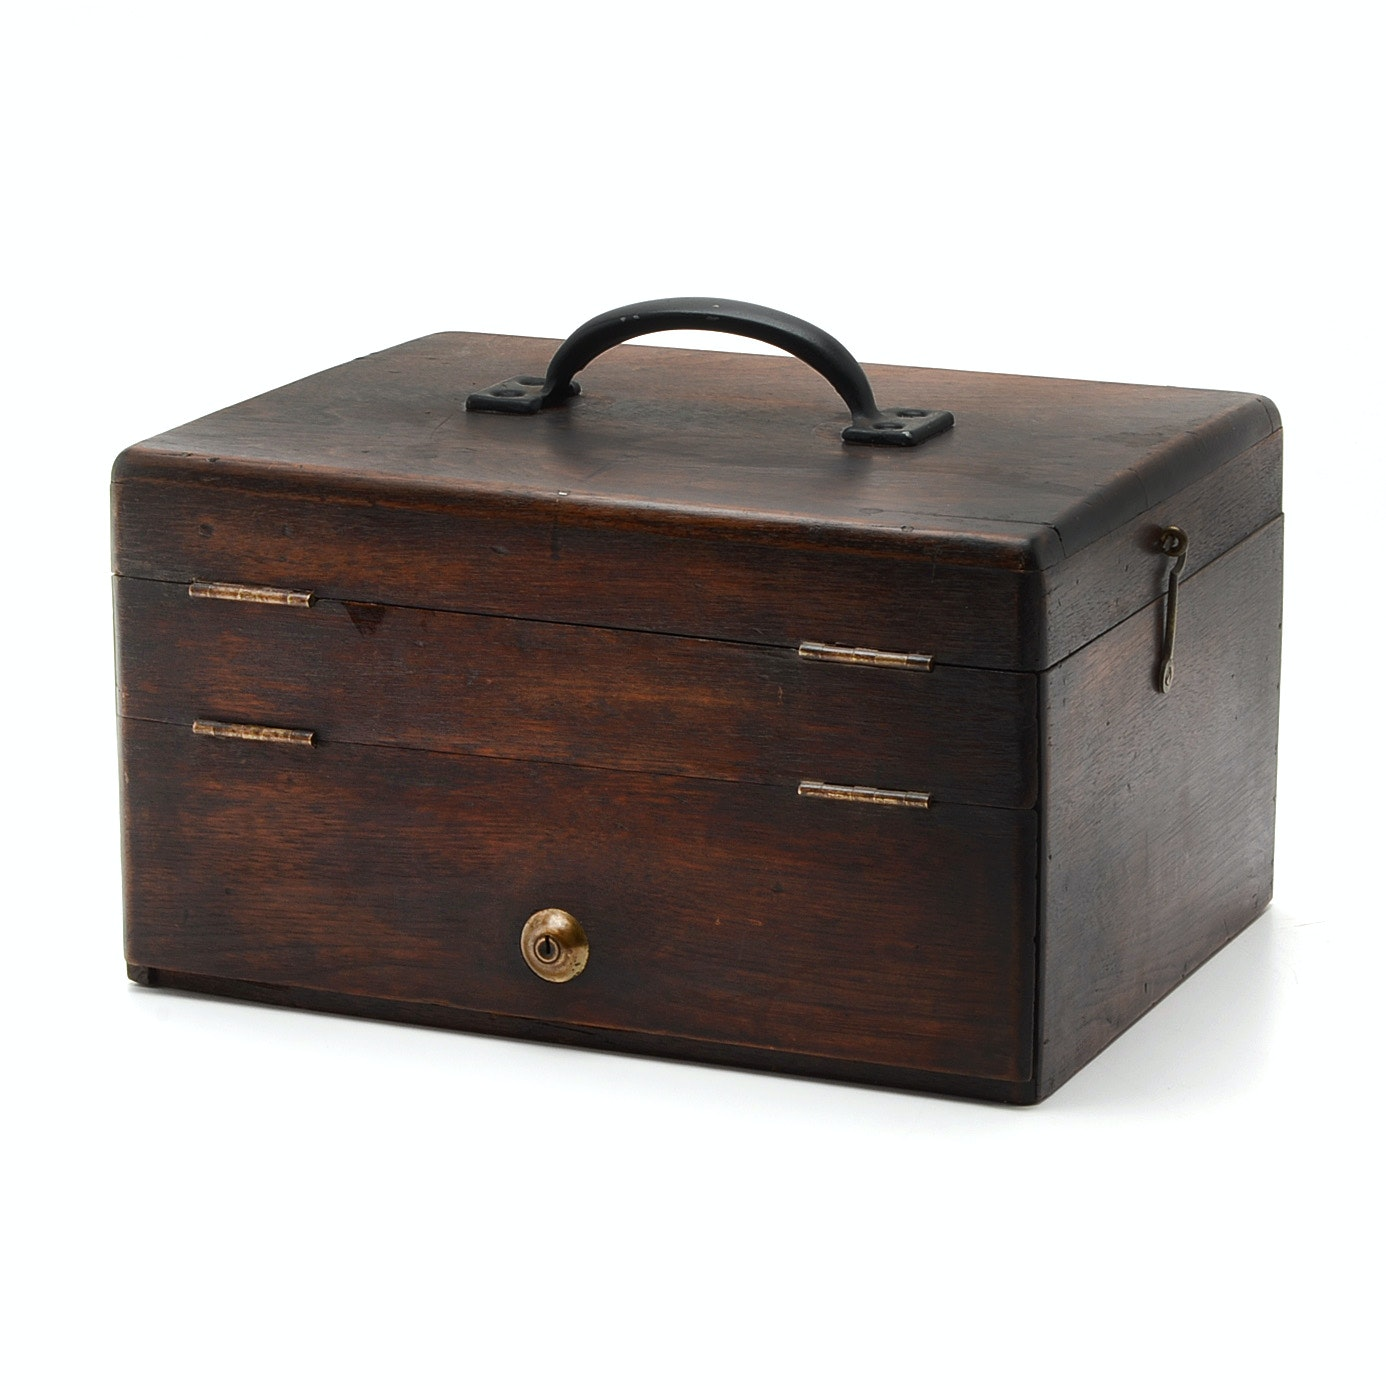 Antique Vernacular Craftsman's Tool Box, Late 19th to Early 20th Century